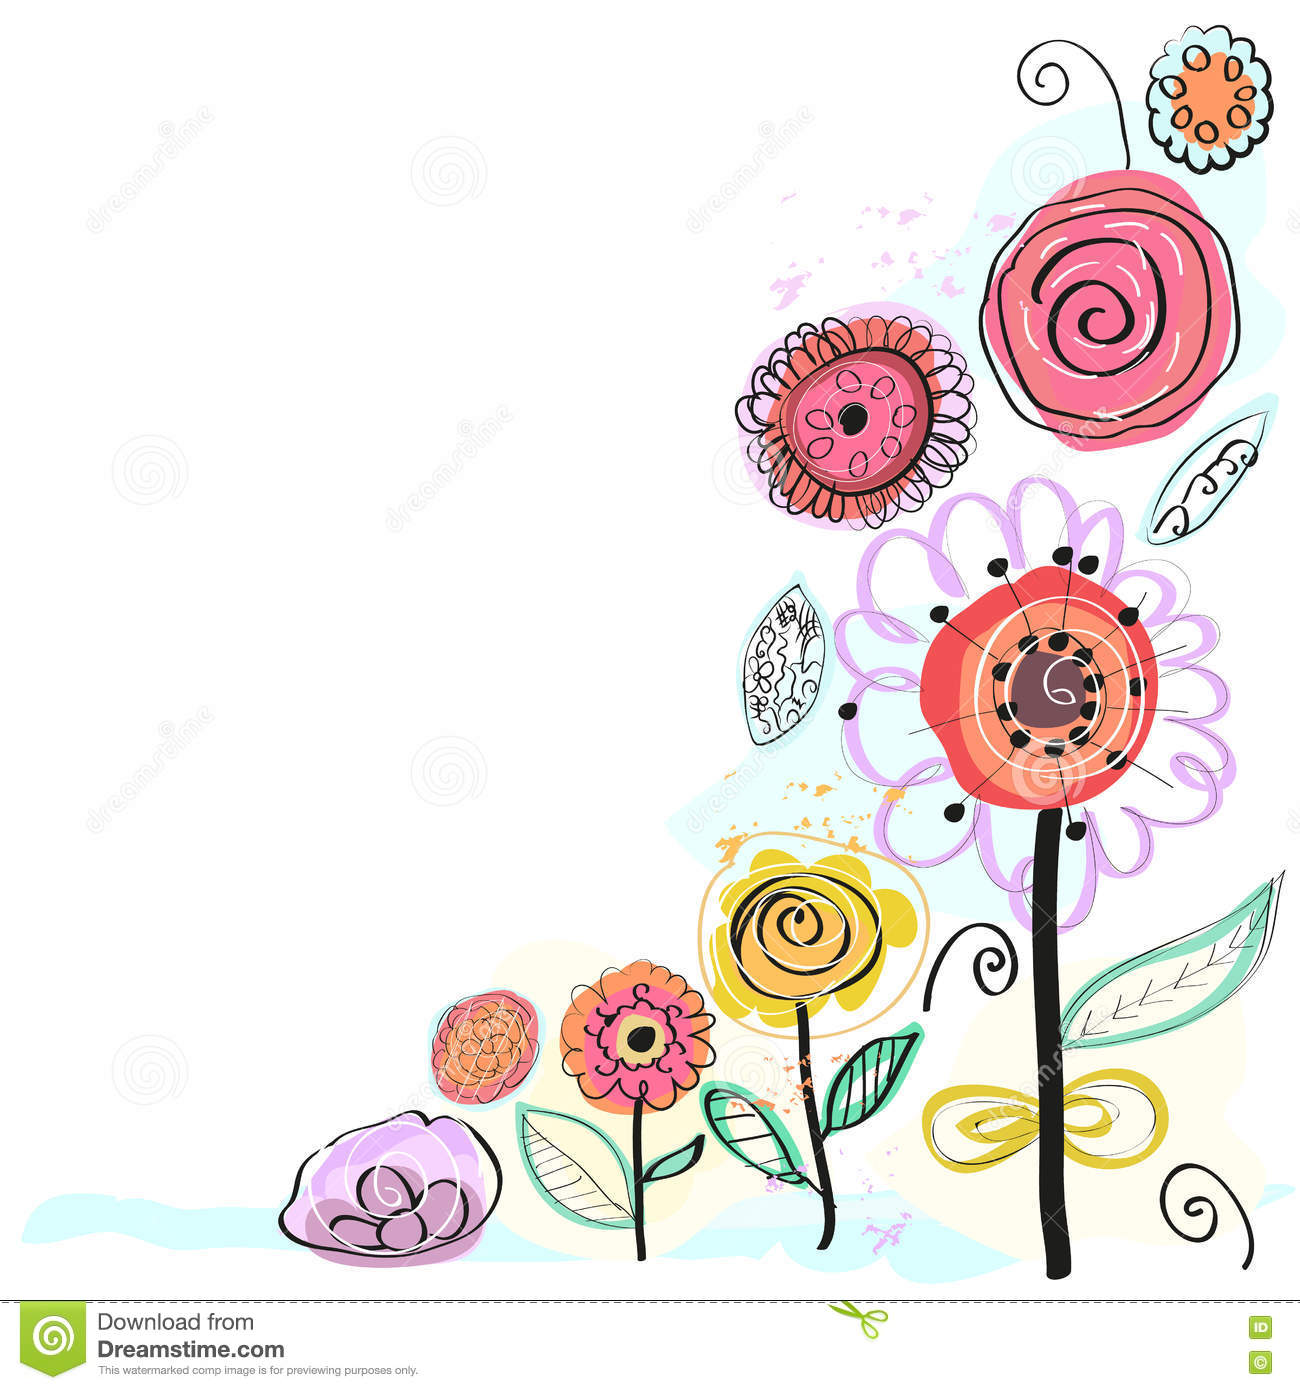 Pastel Coloured Spring Flowers Decorative Floral Greeting Card